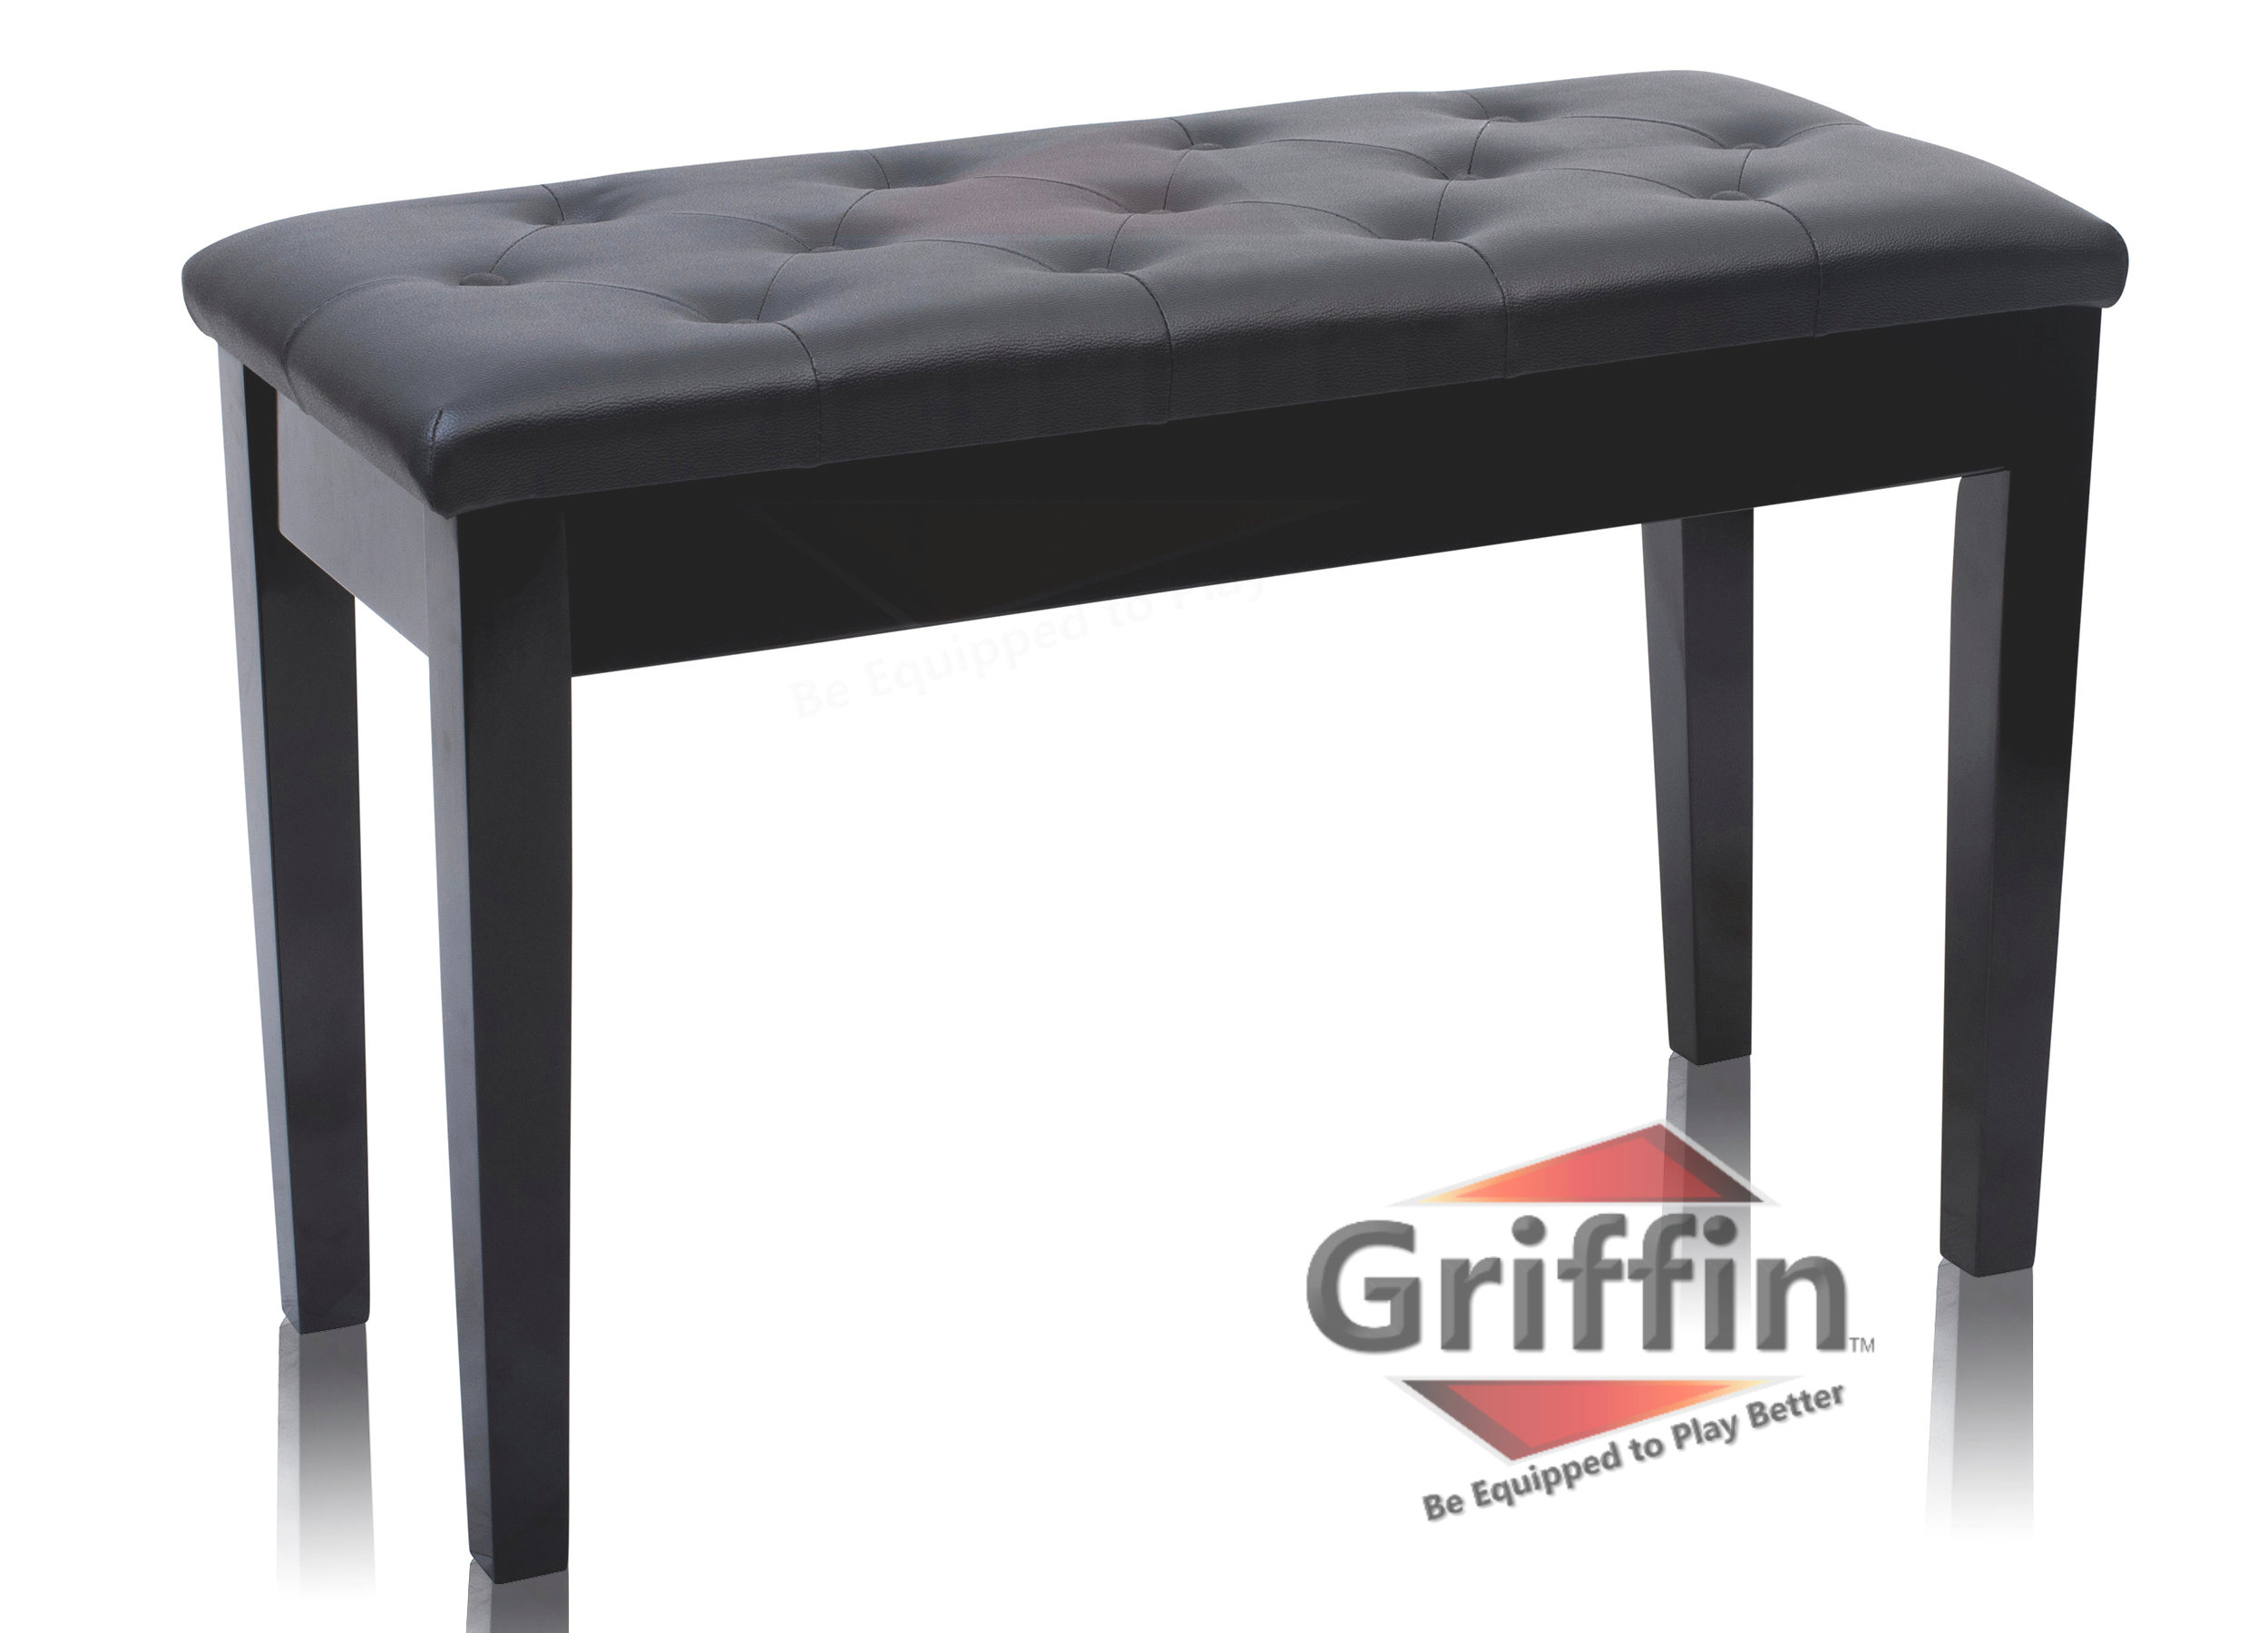 Premium Antique Black Piano Bench By Griffin � Solid Wood Frame & Luxurious, Comfortable Leather Padded Duet... by Griffin